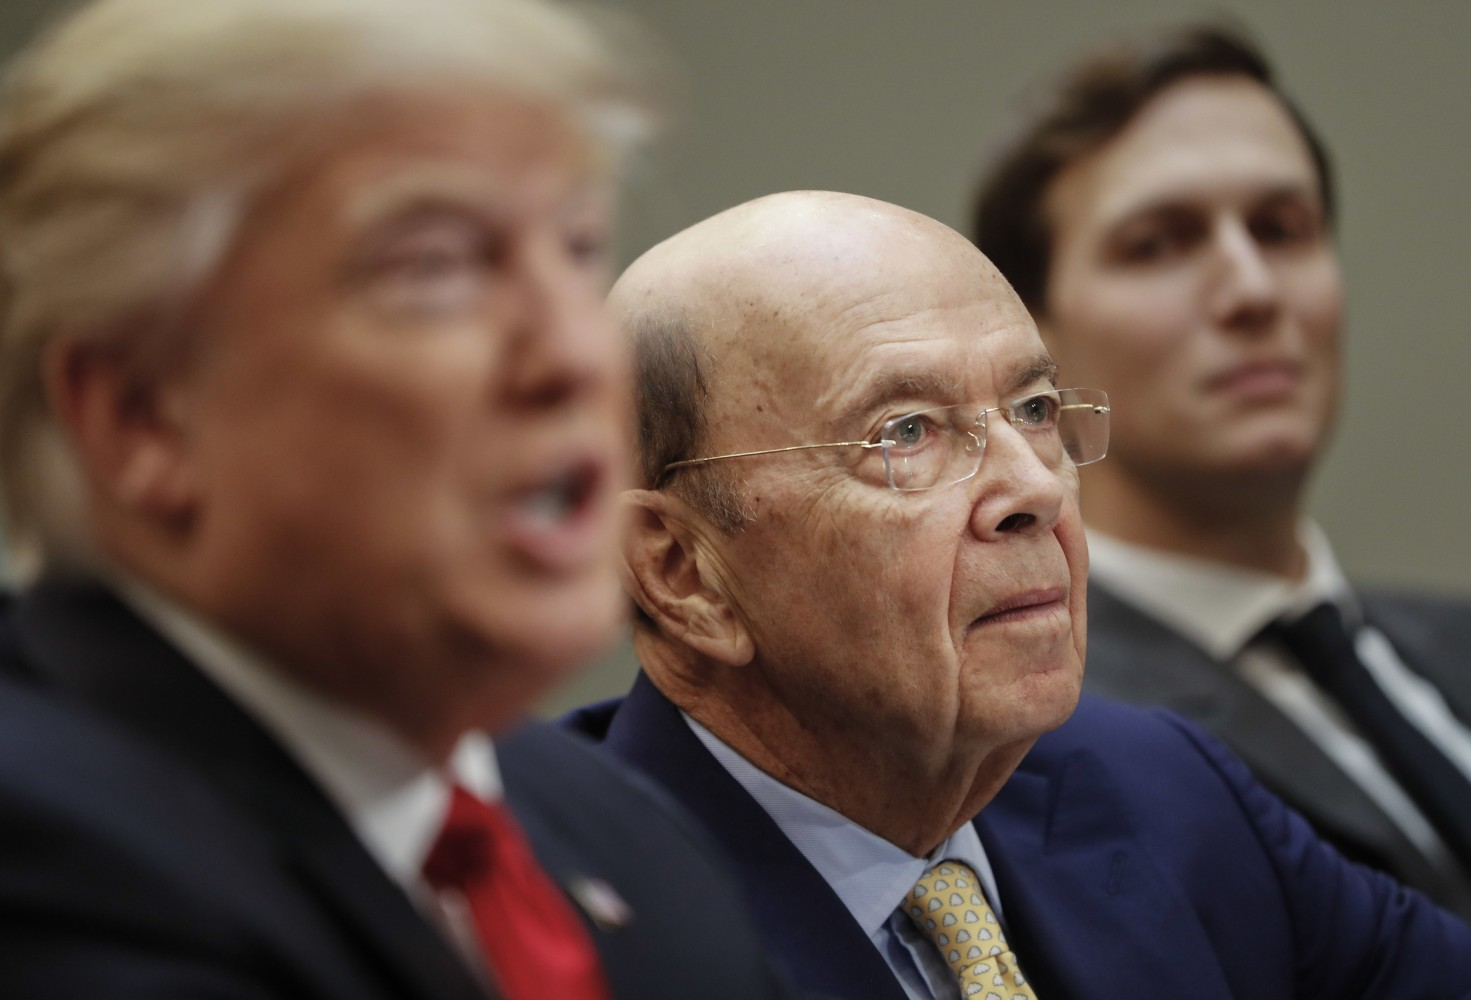 New secretary of commerce Wilbur Ross has ties to illicit Russian finance